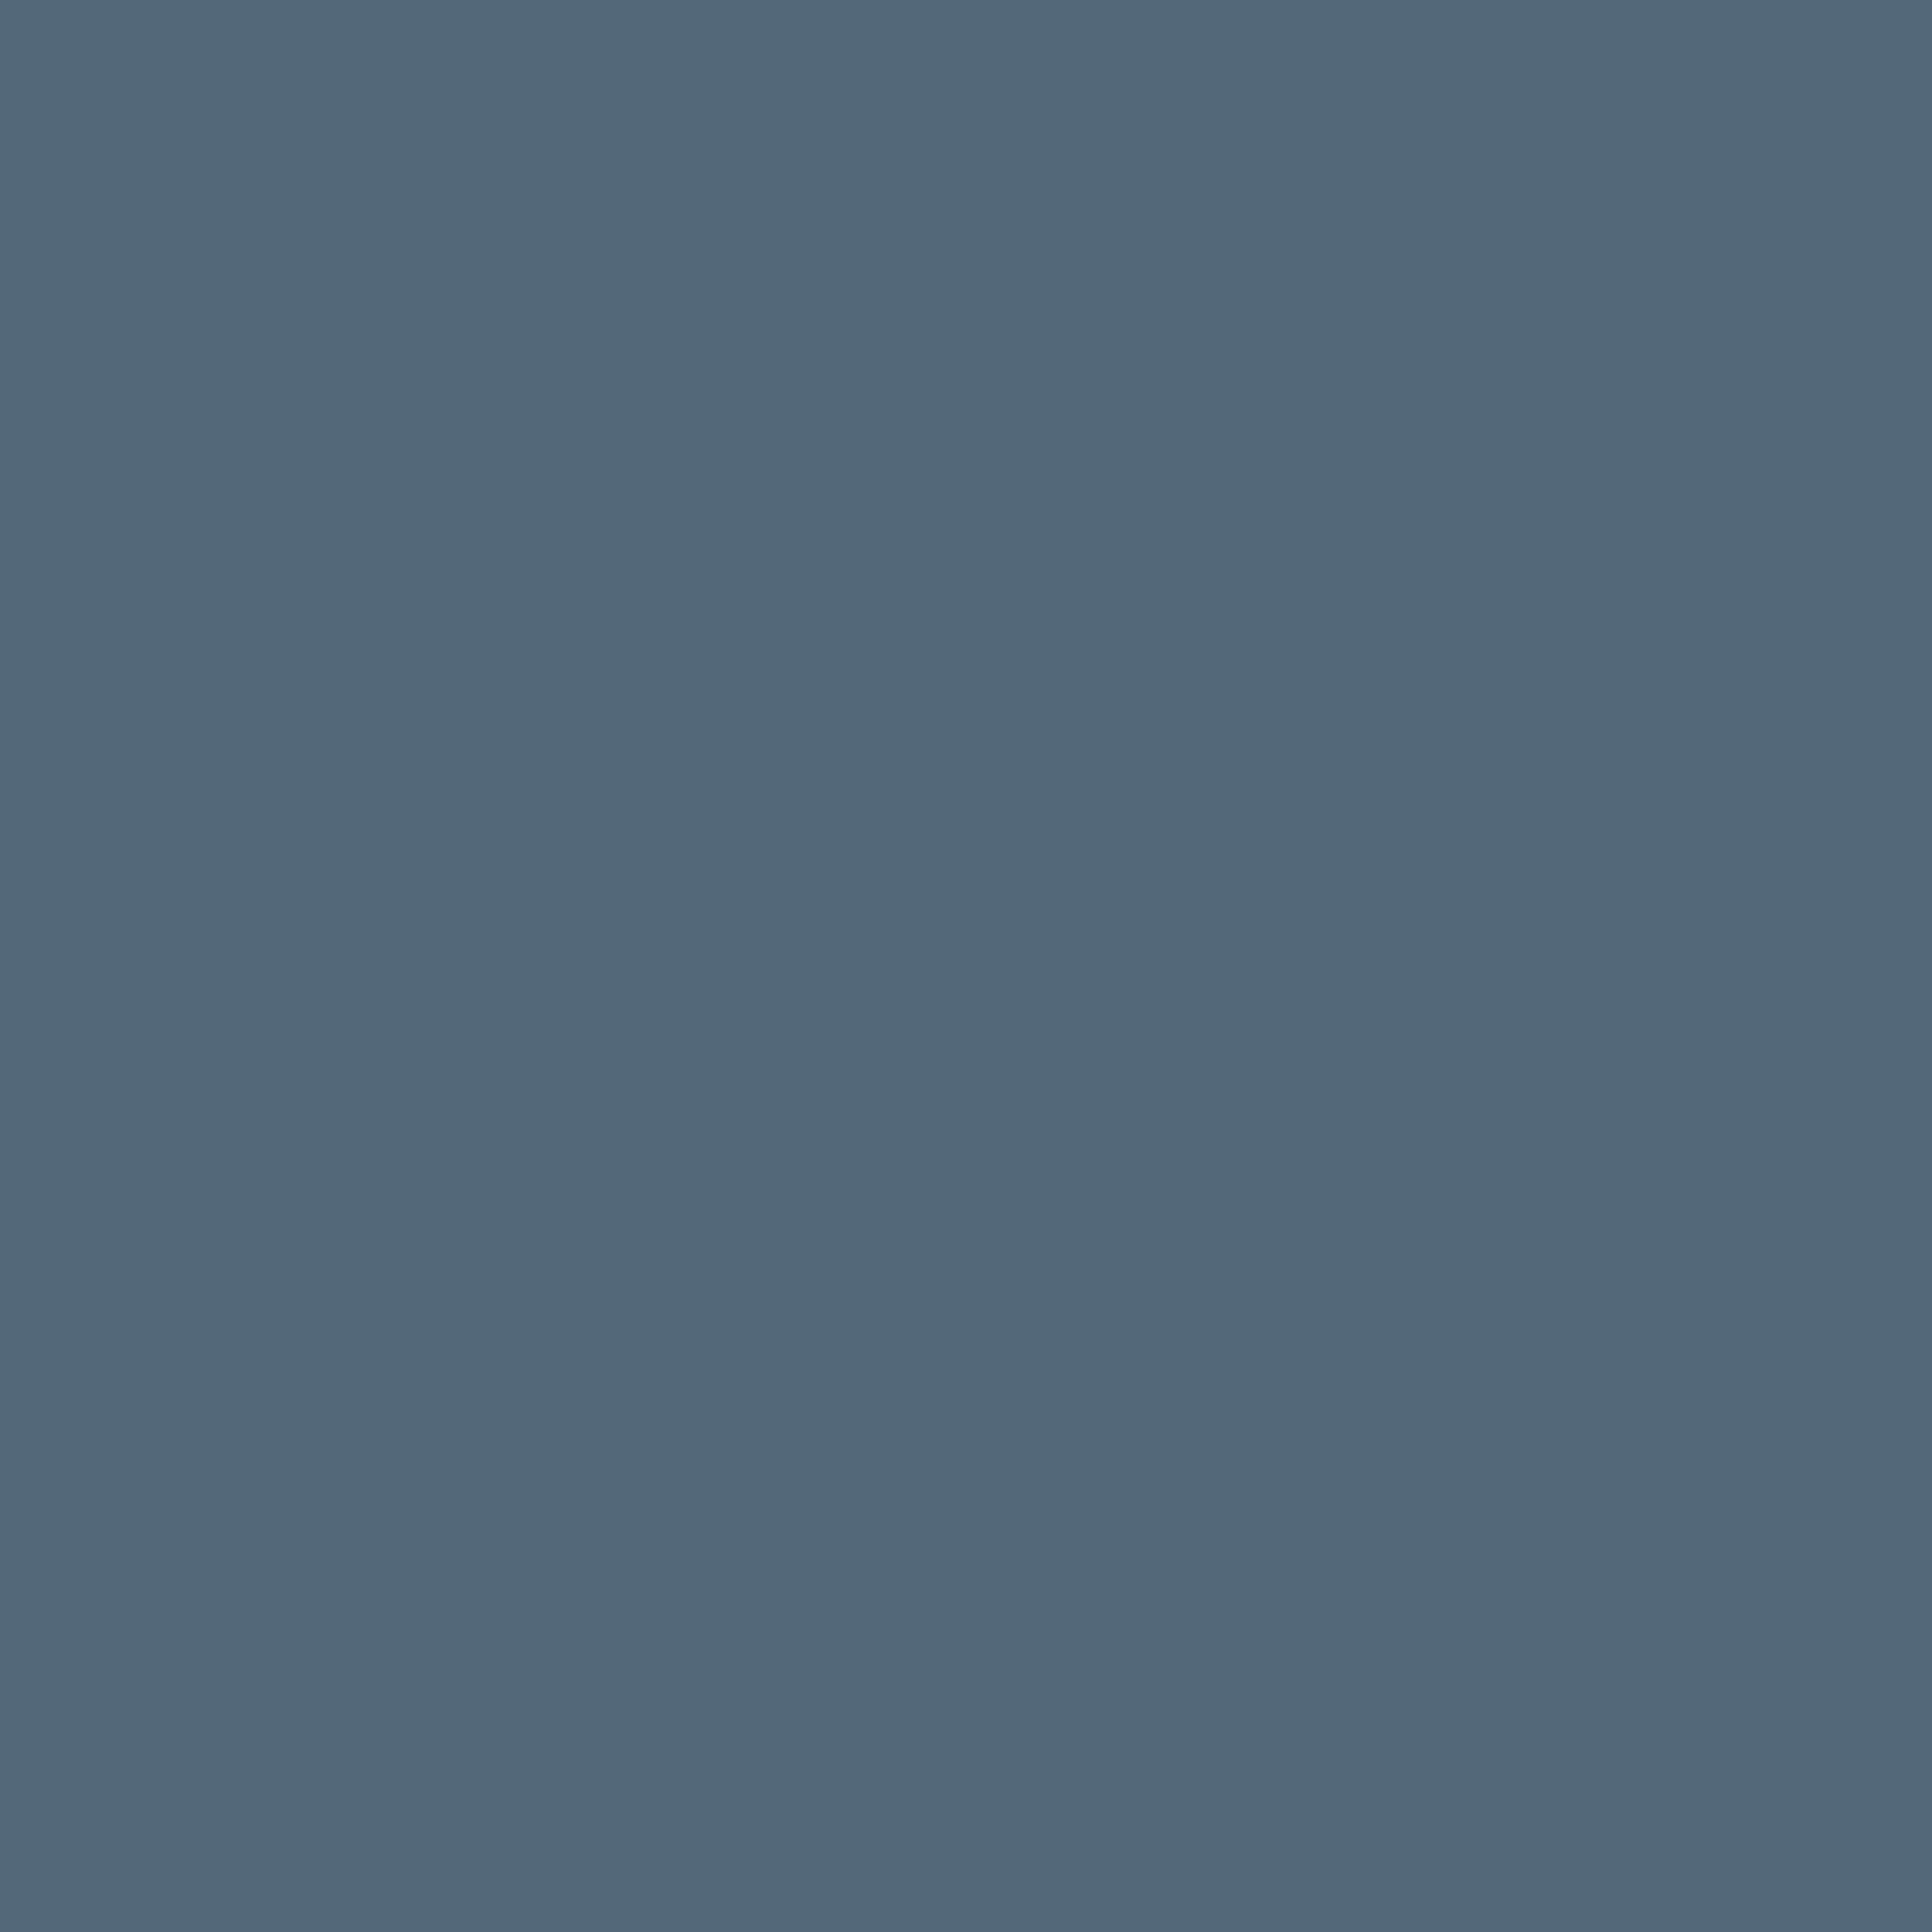 3600x3600 Paynes Grey Solid Color Background